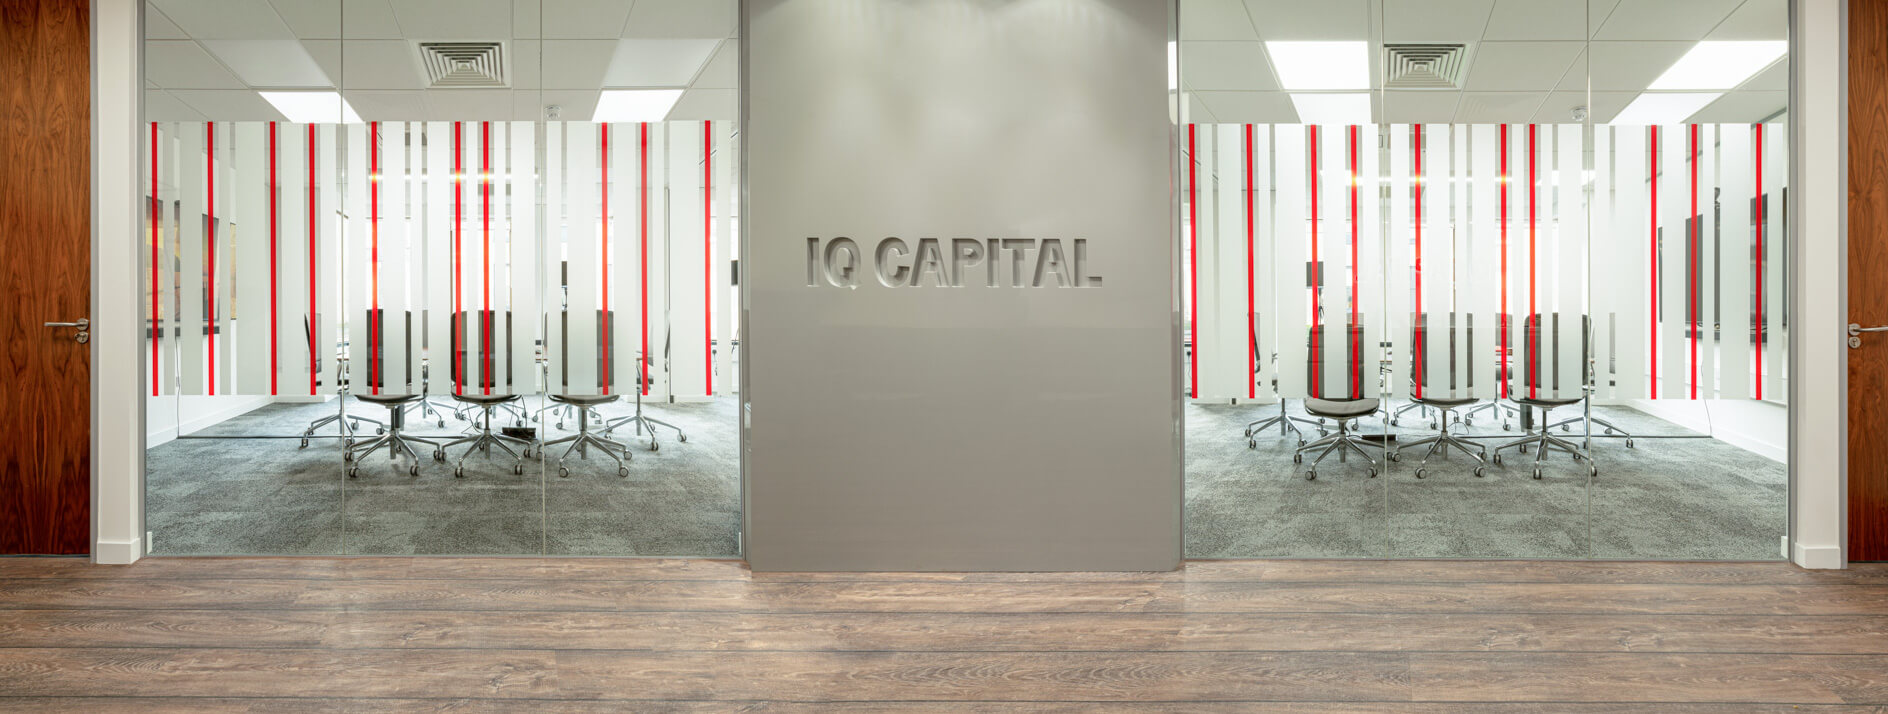 IQ Capital welcomes Simon Hirtzel as General Partner & COO